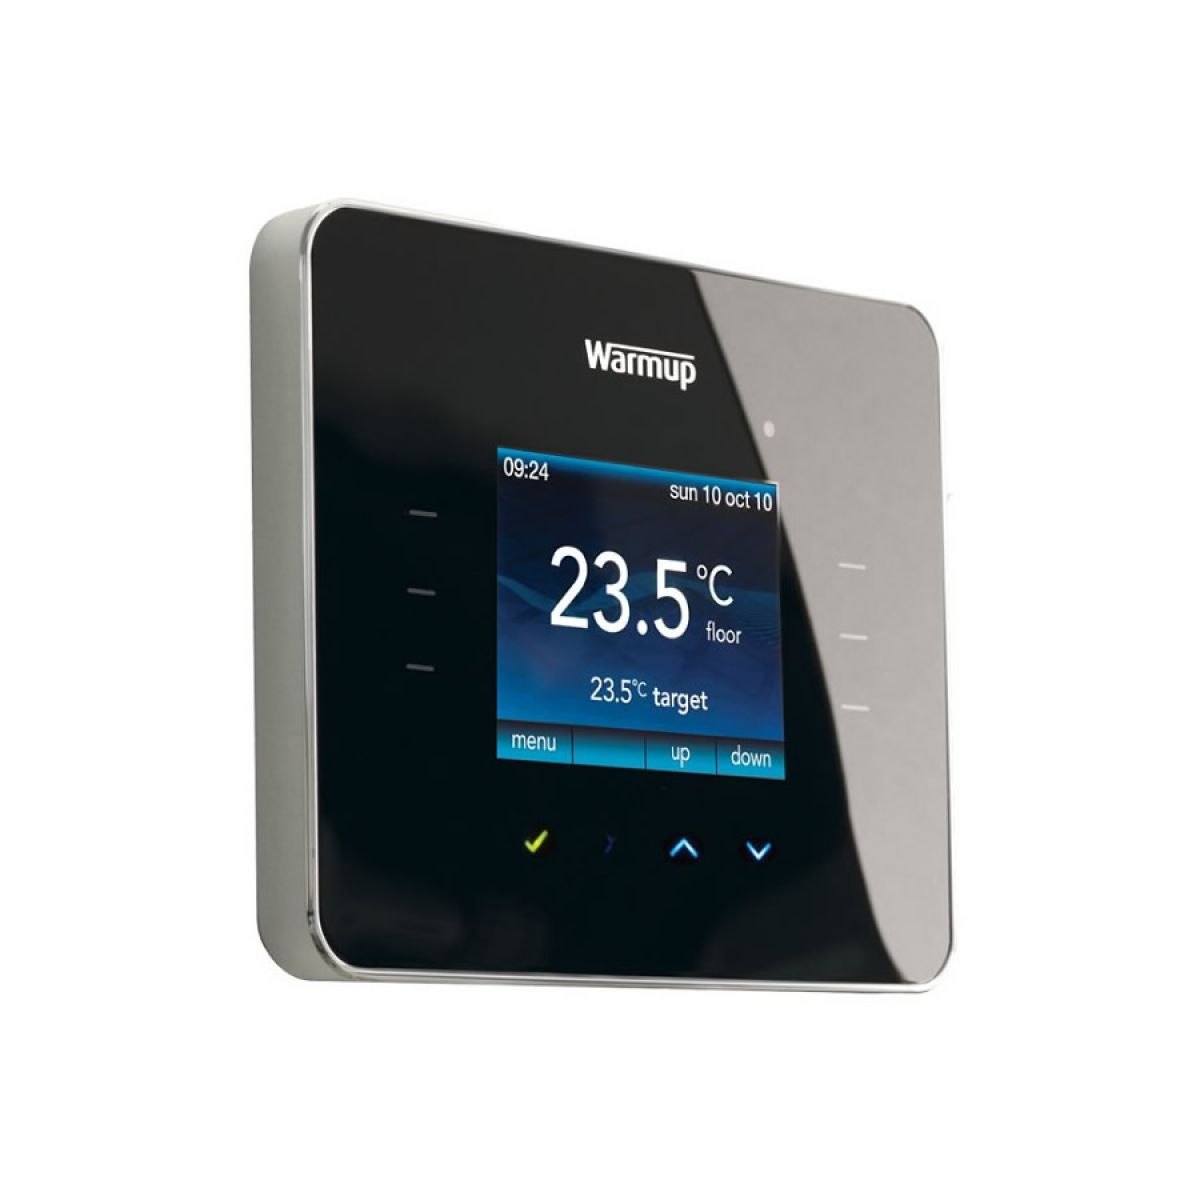 Warmup 3ie programmable touchscreen thermostat uk bathrooms for Heated bathroom floor thermostat